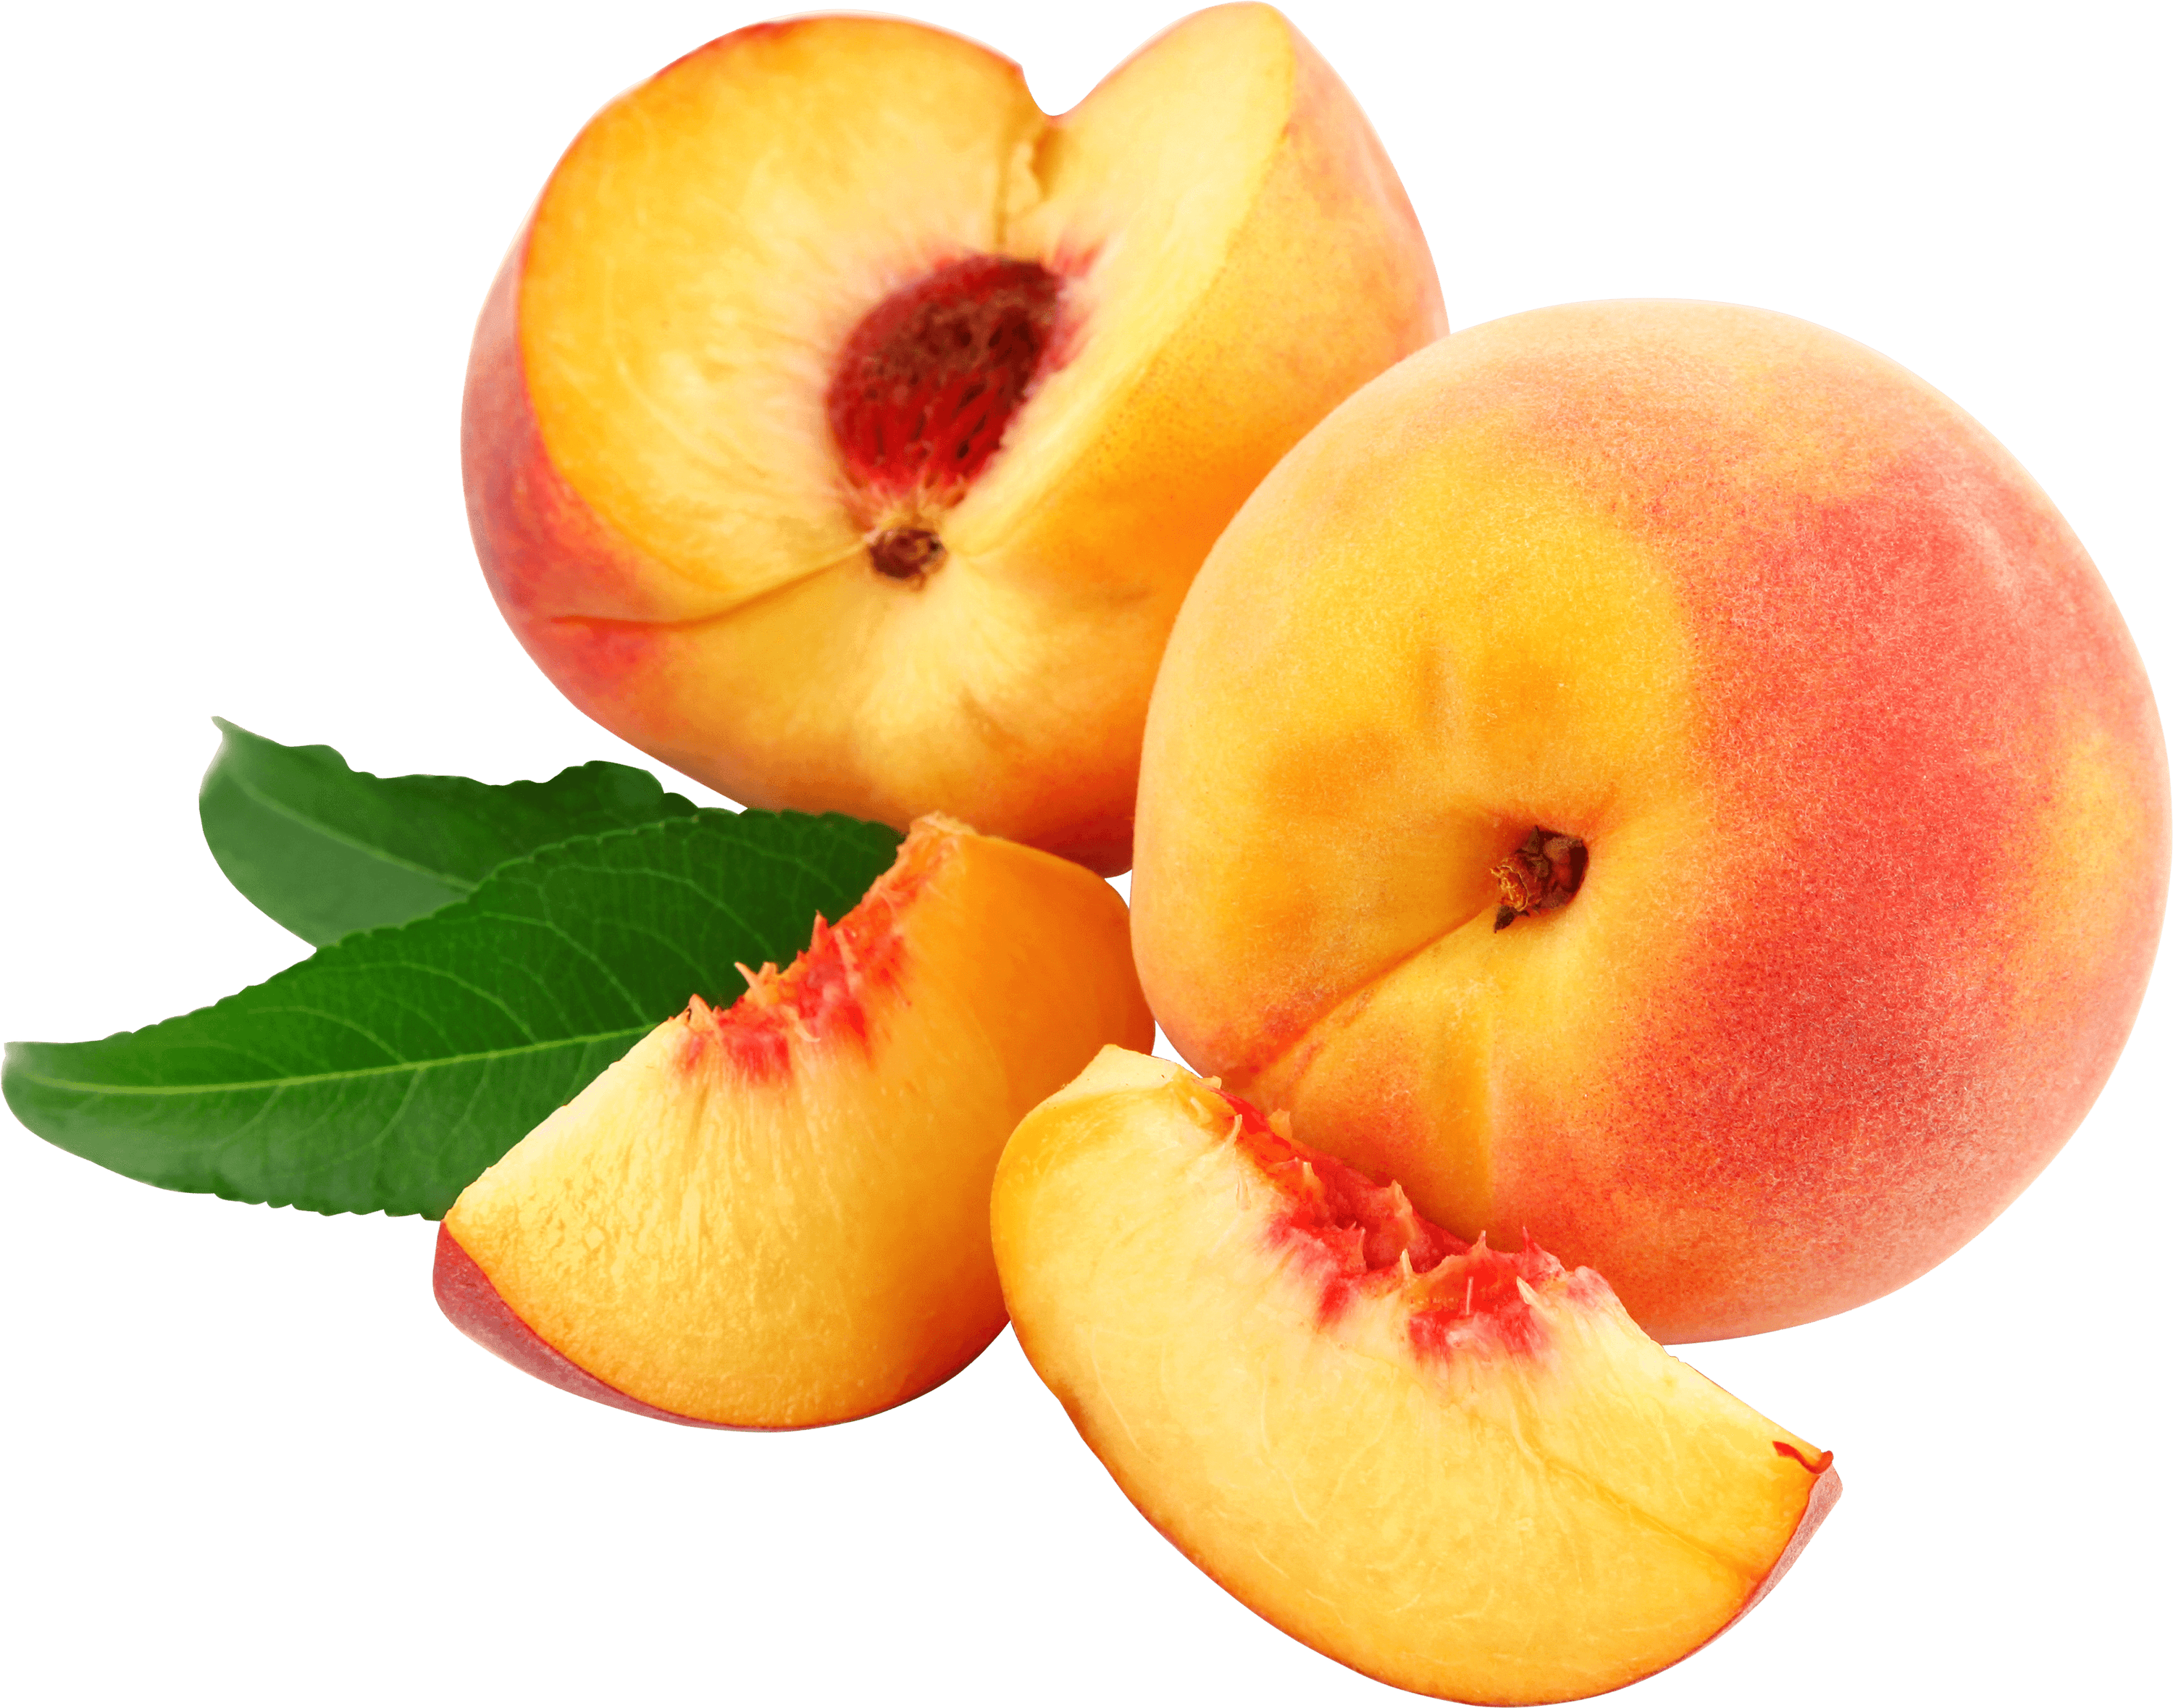 image royalty free download Transparent peach. Scene of peaches png